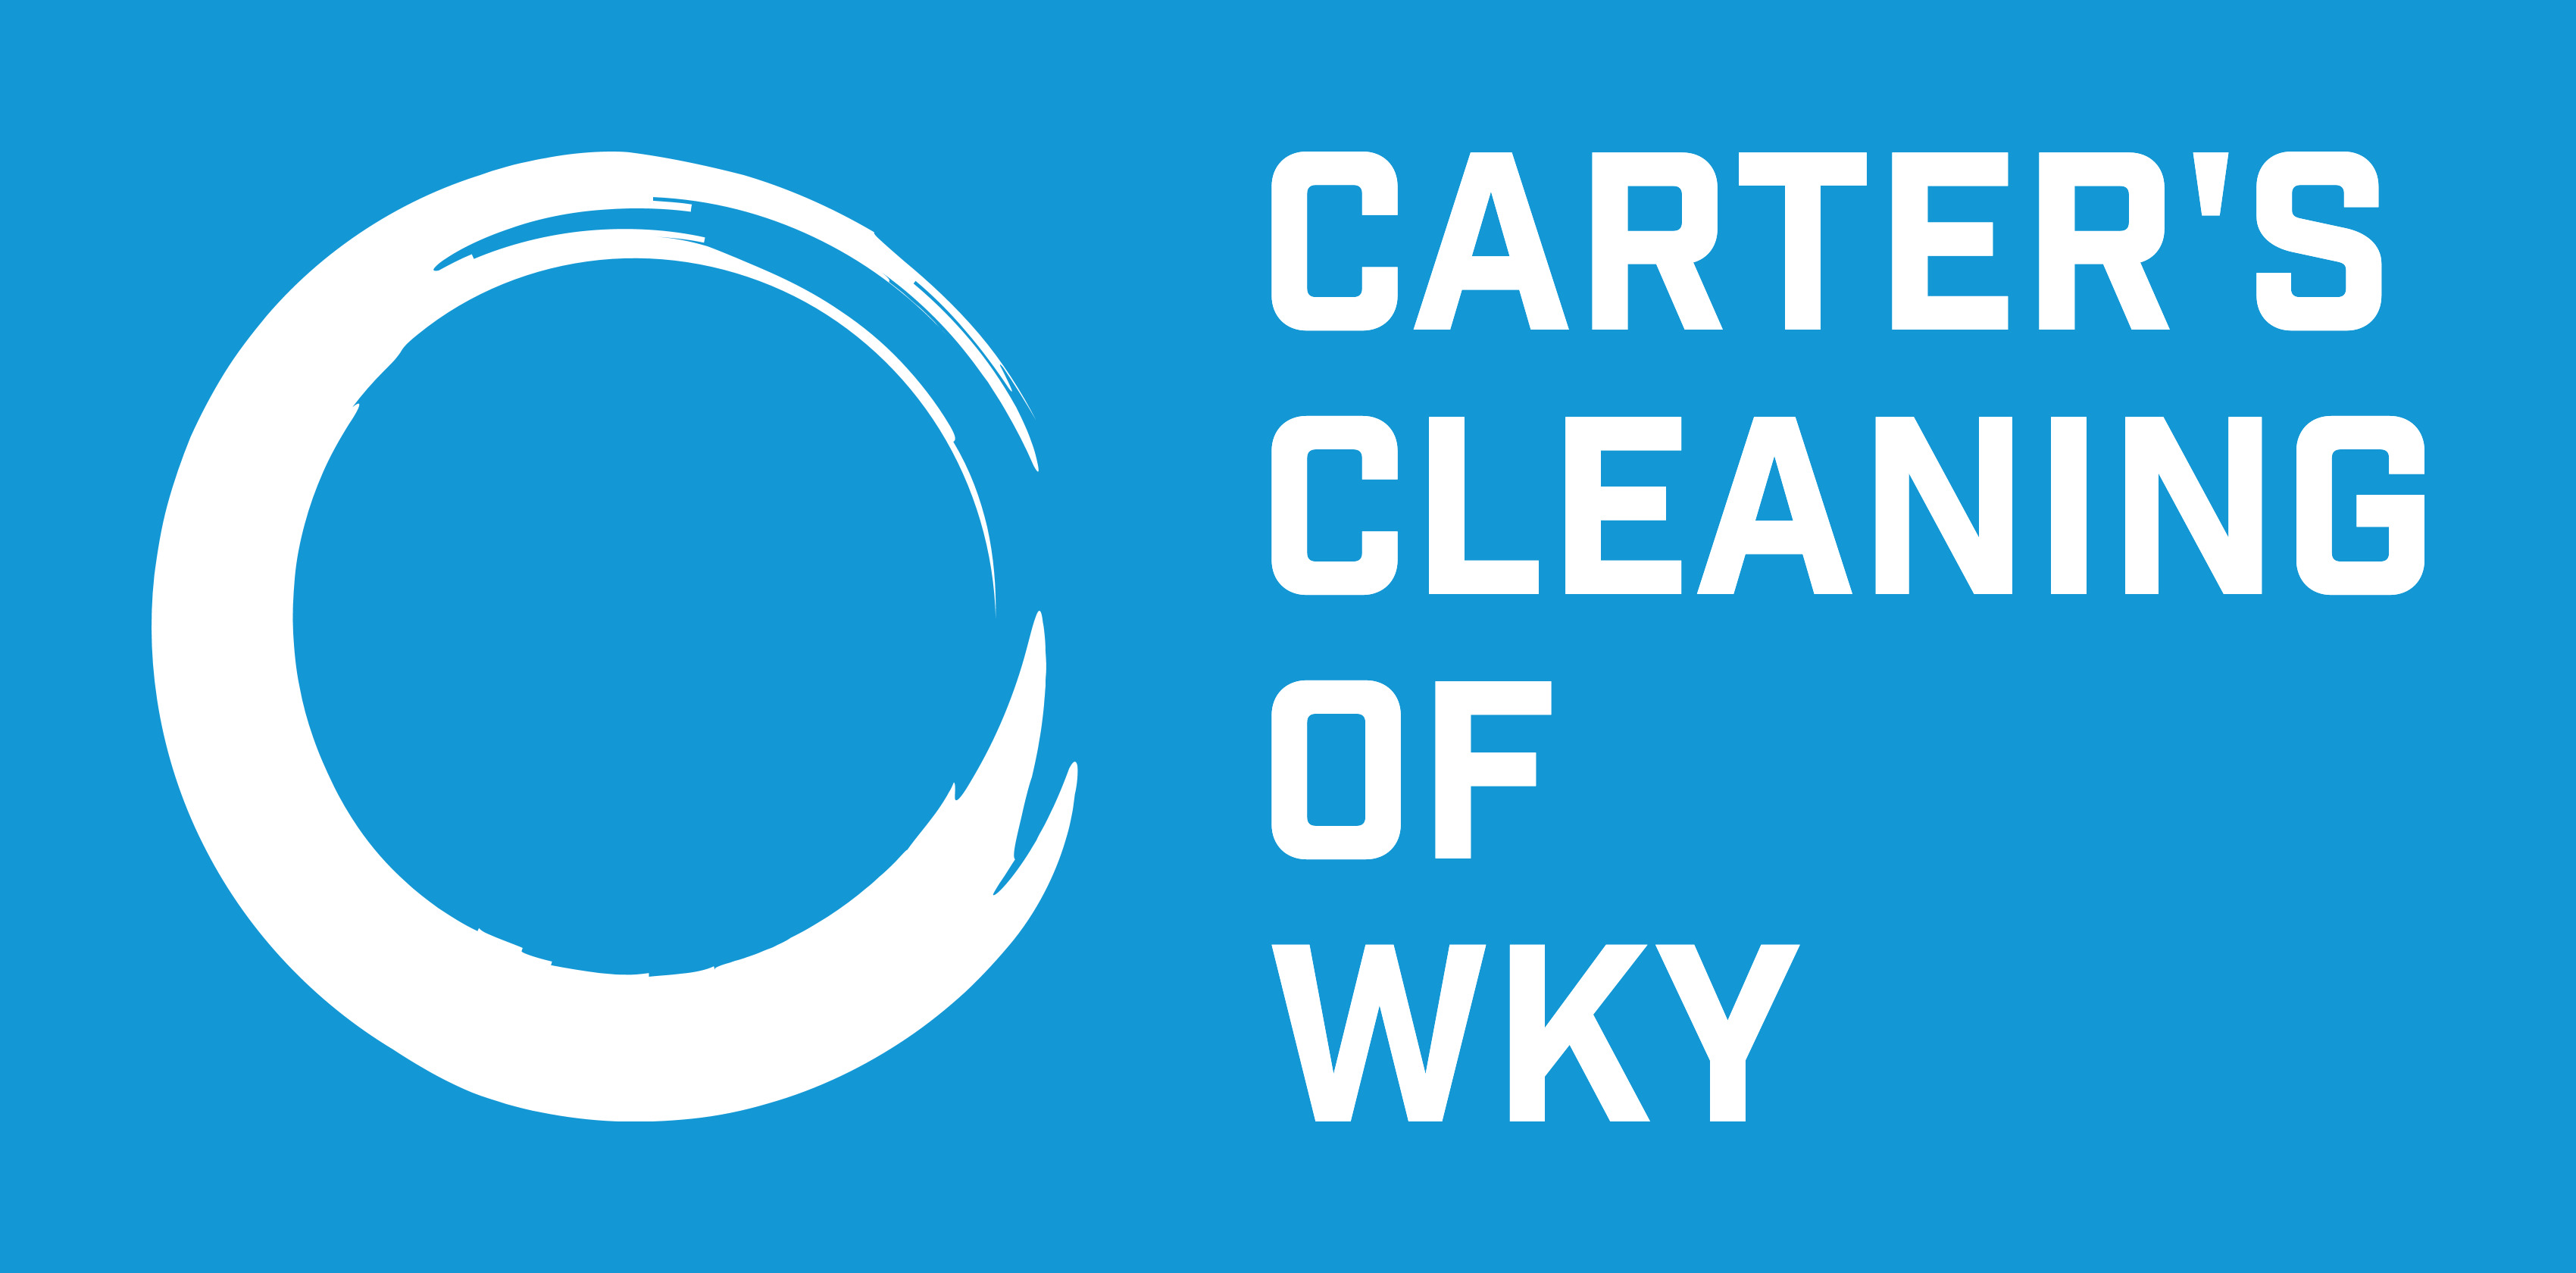 Carter's Cleaning of WKY logo